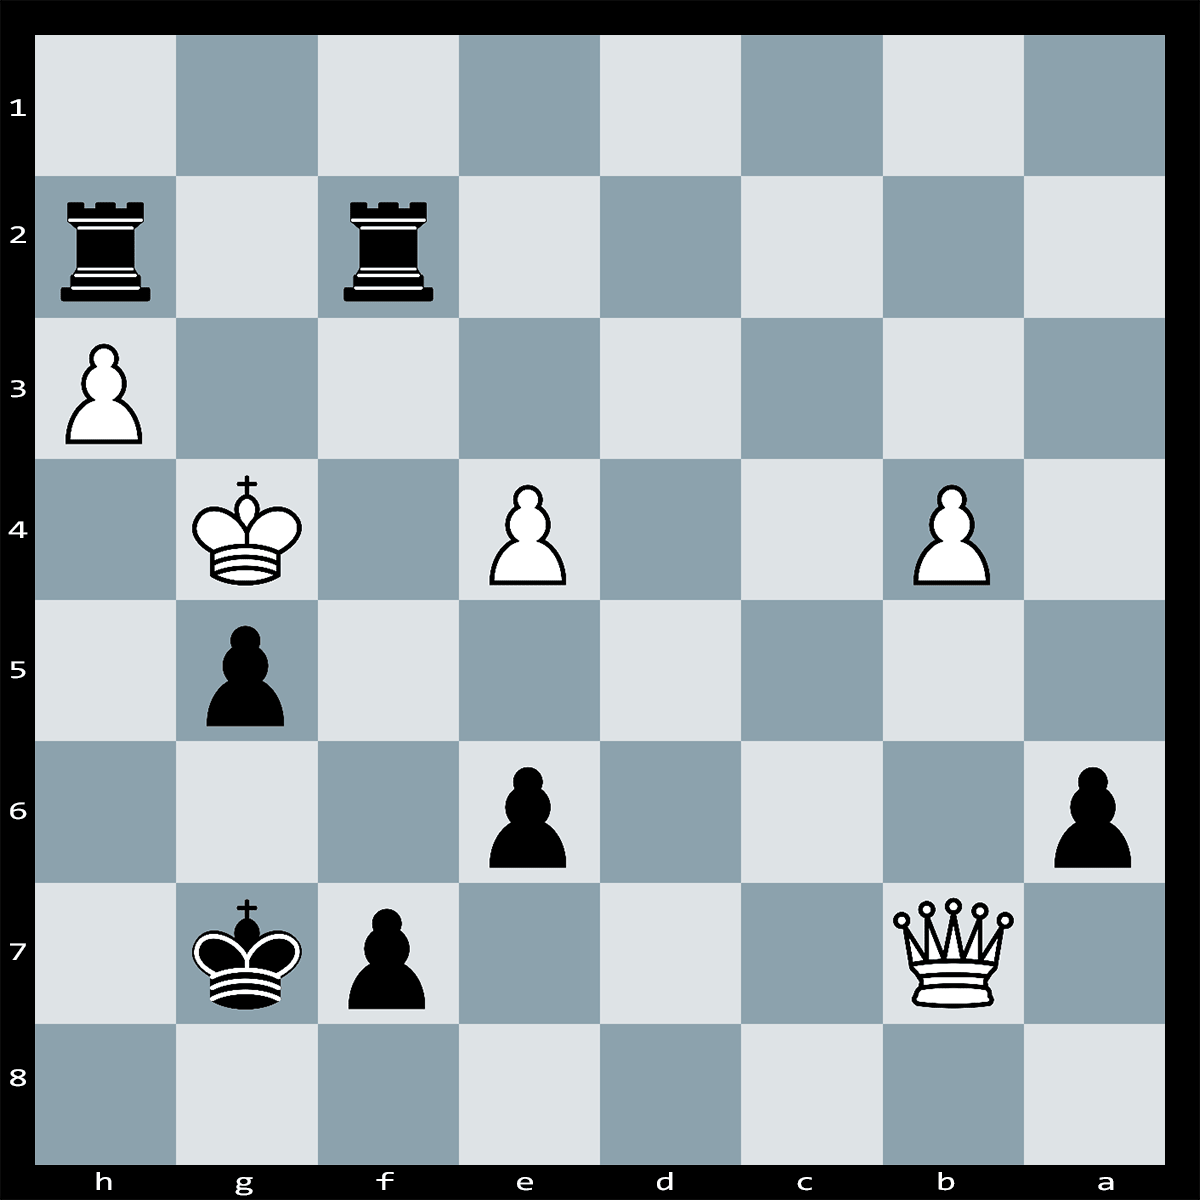 Chess Puzzle #282 | In this position White can force checkmate in four moves. Can you see how this is achieved?